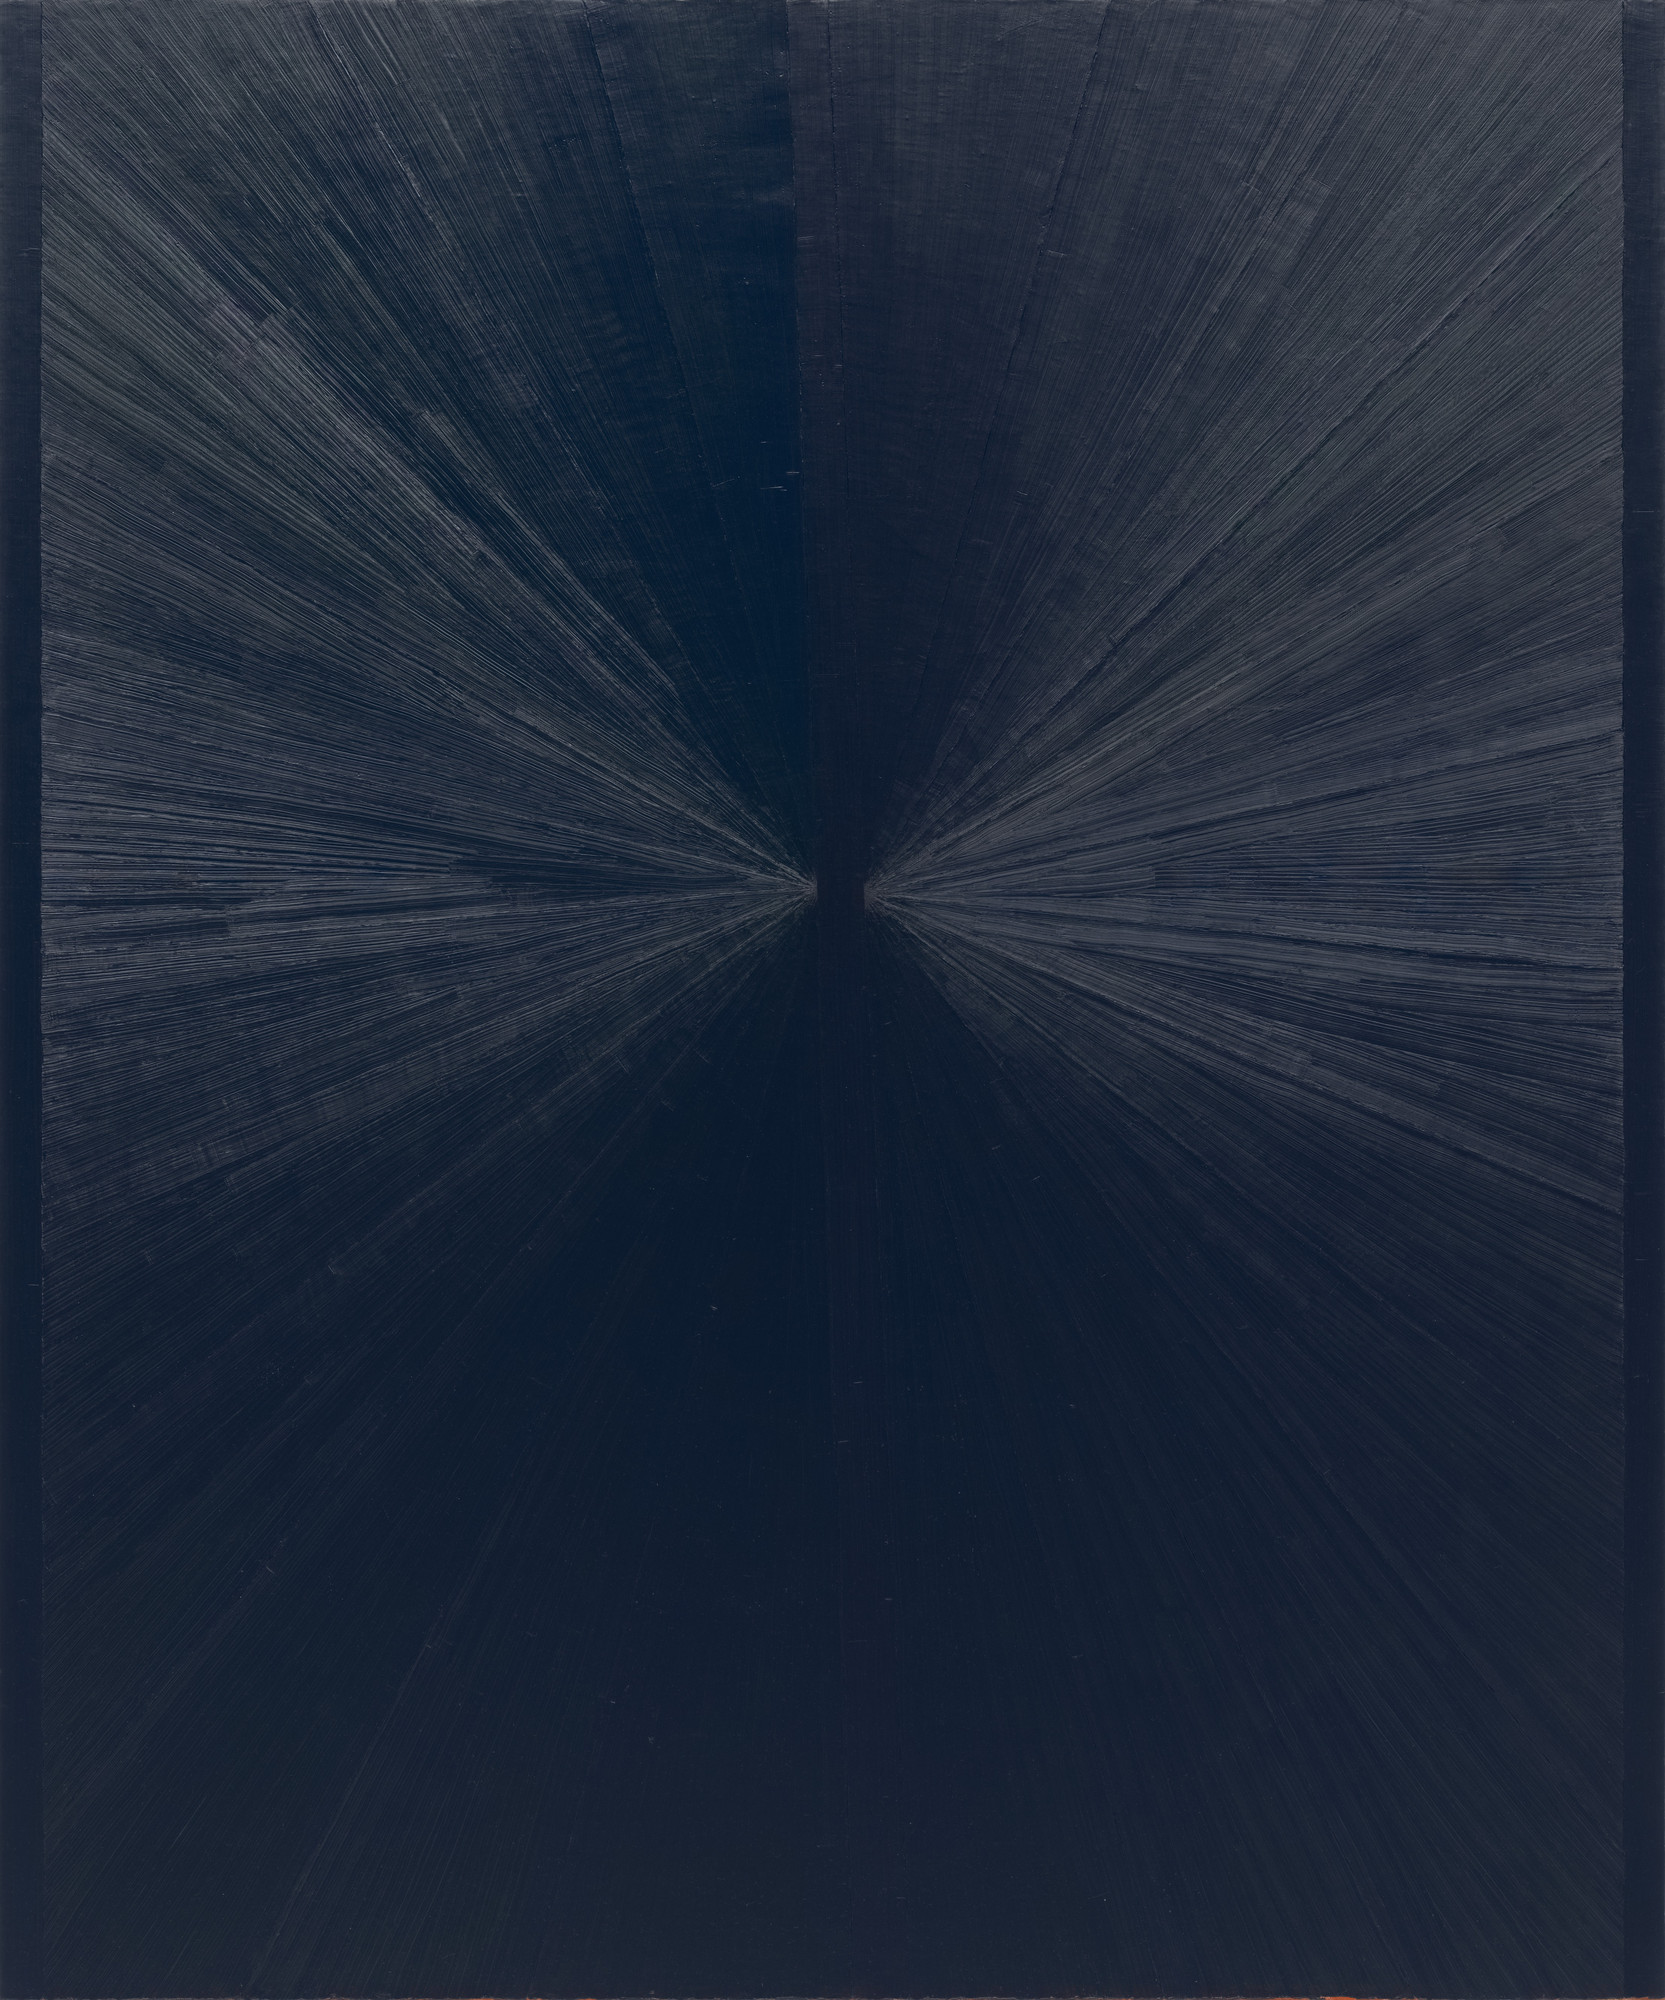 Mark Grotjahn. Untitled (Blue Painting Light to Dark VII). 2006